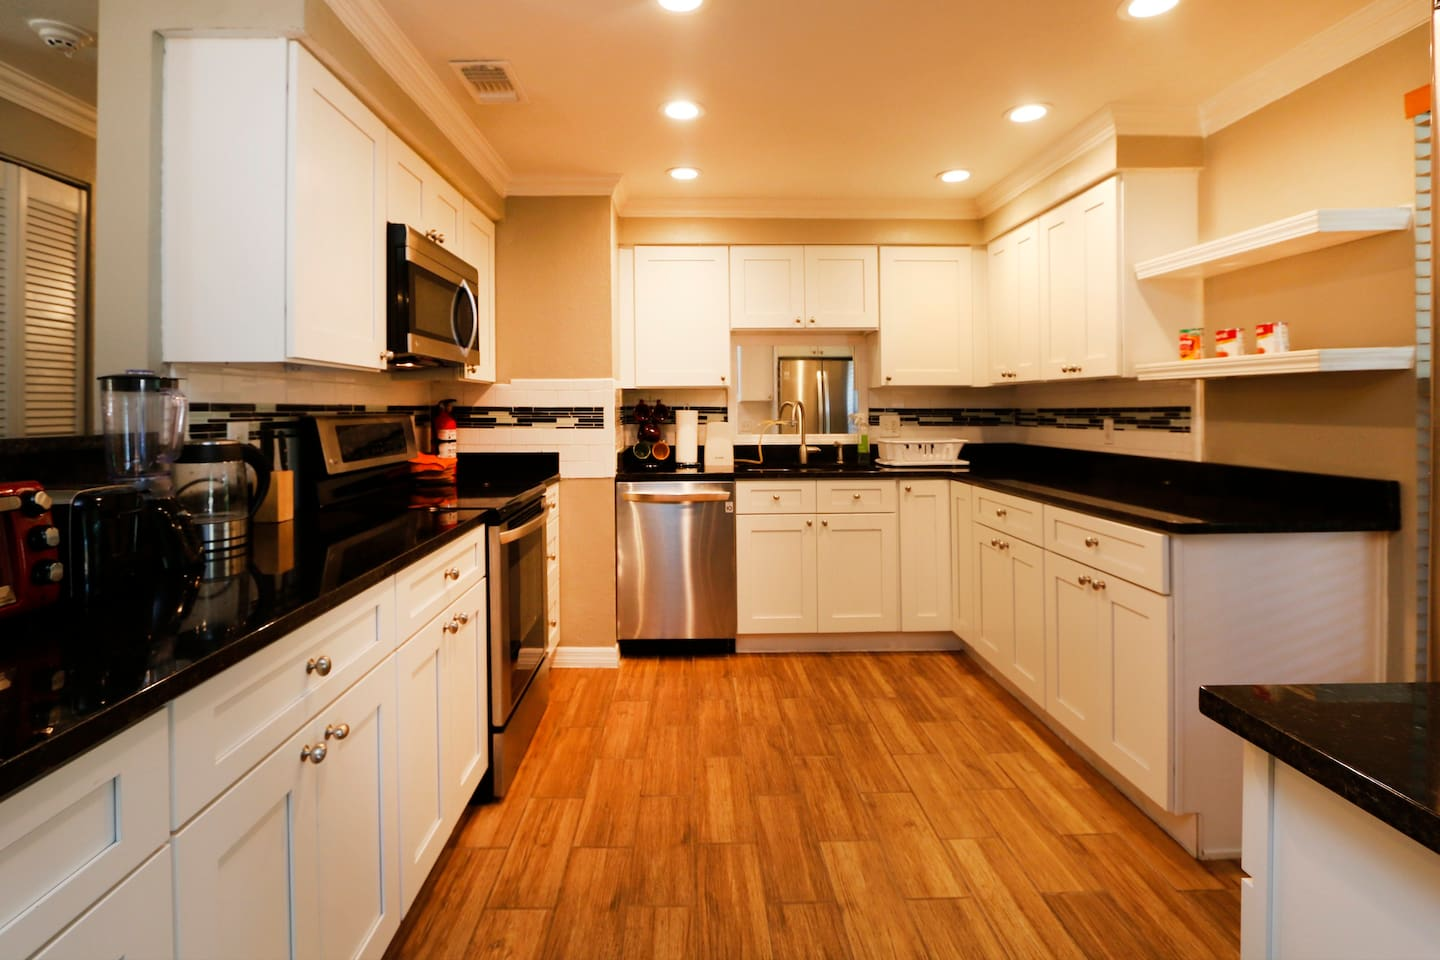 Large and beautiful kitchen to provide everything you need to cook light meals